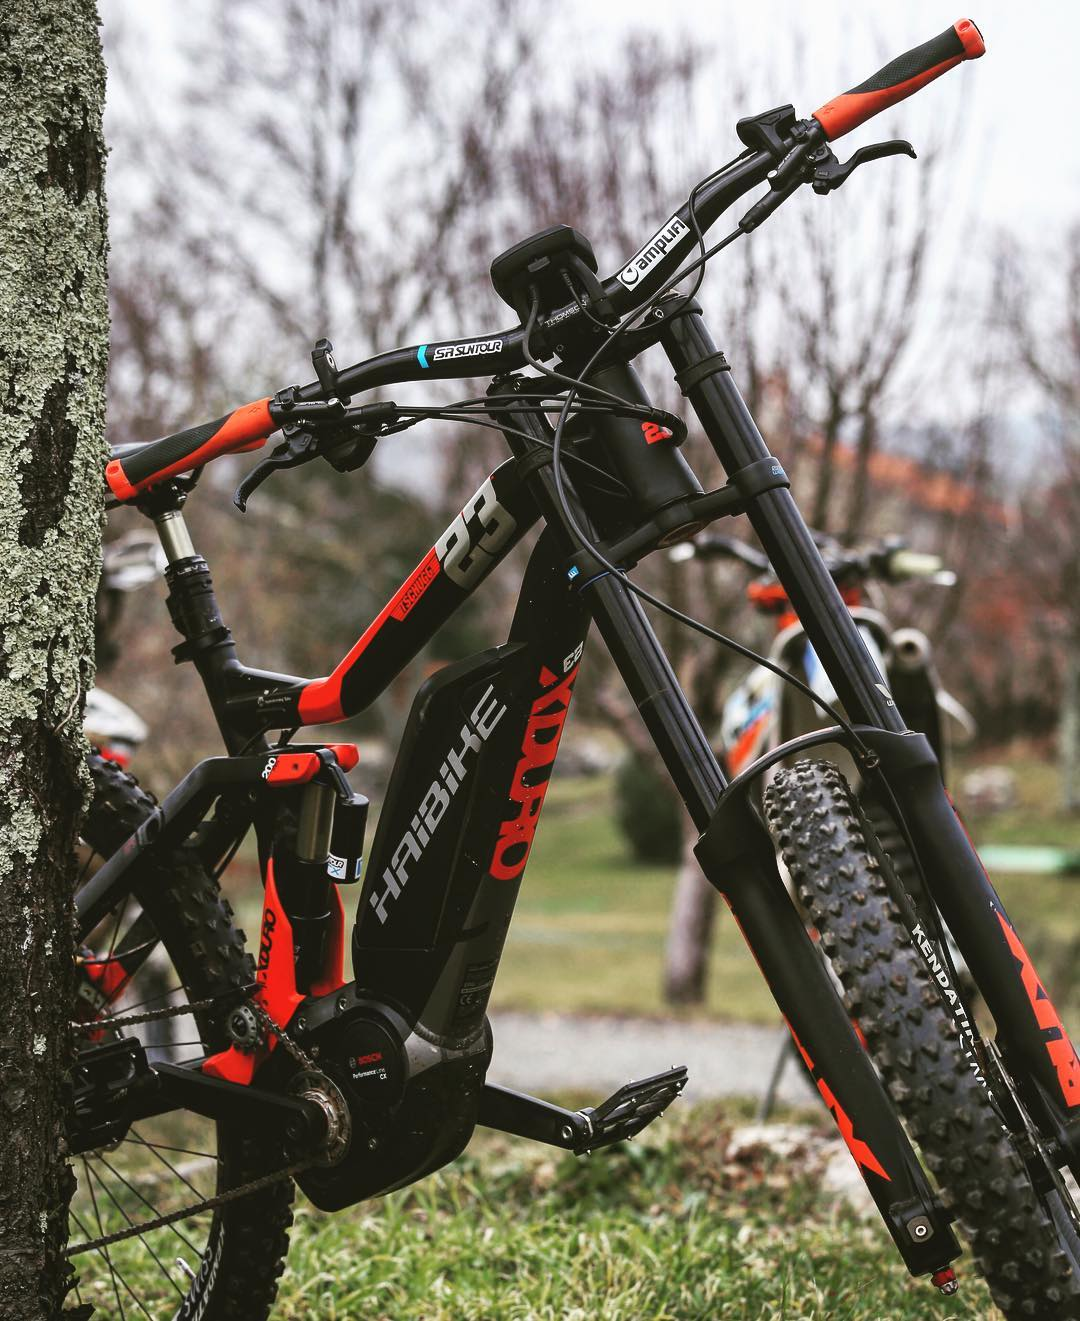 Slayer! #DH #MTB #xduro #freeride #Haibike #bikes #eperformance @tschugg23 #enduro